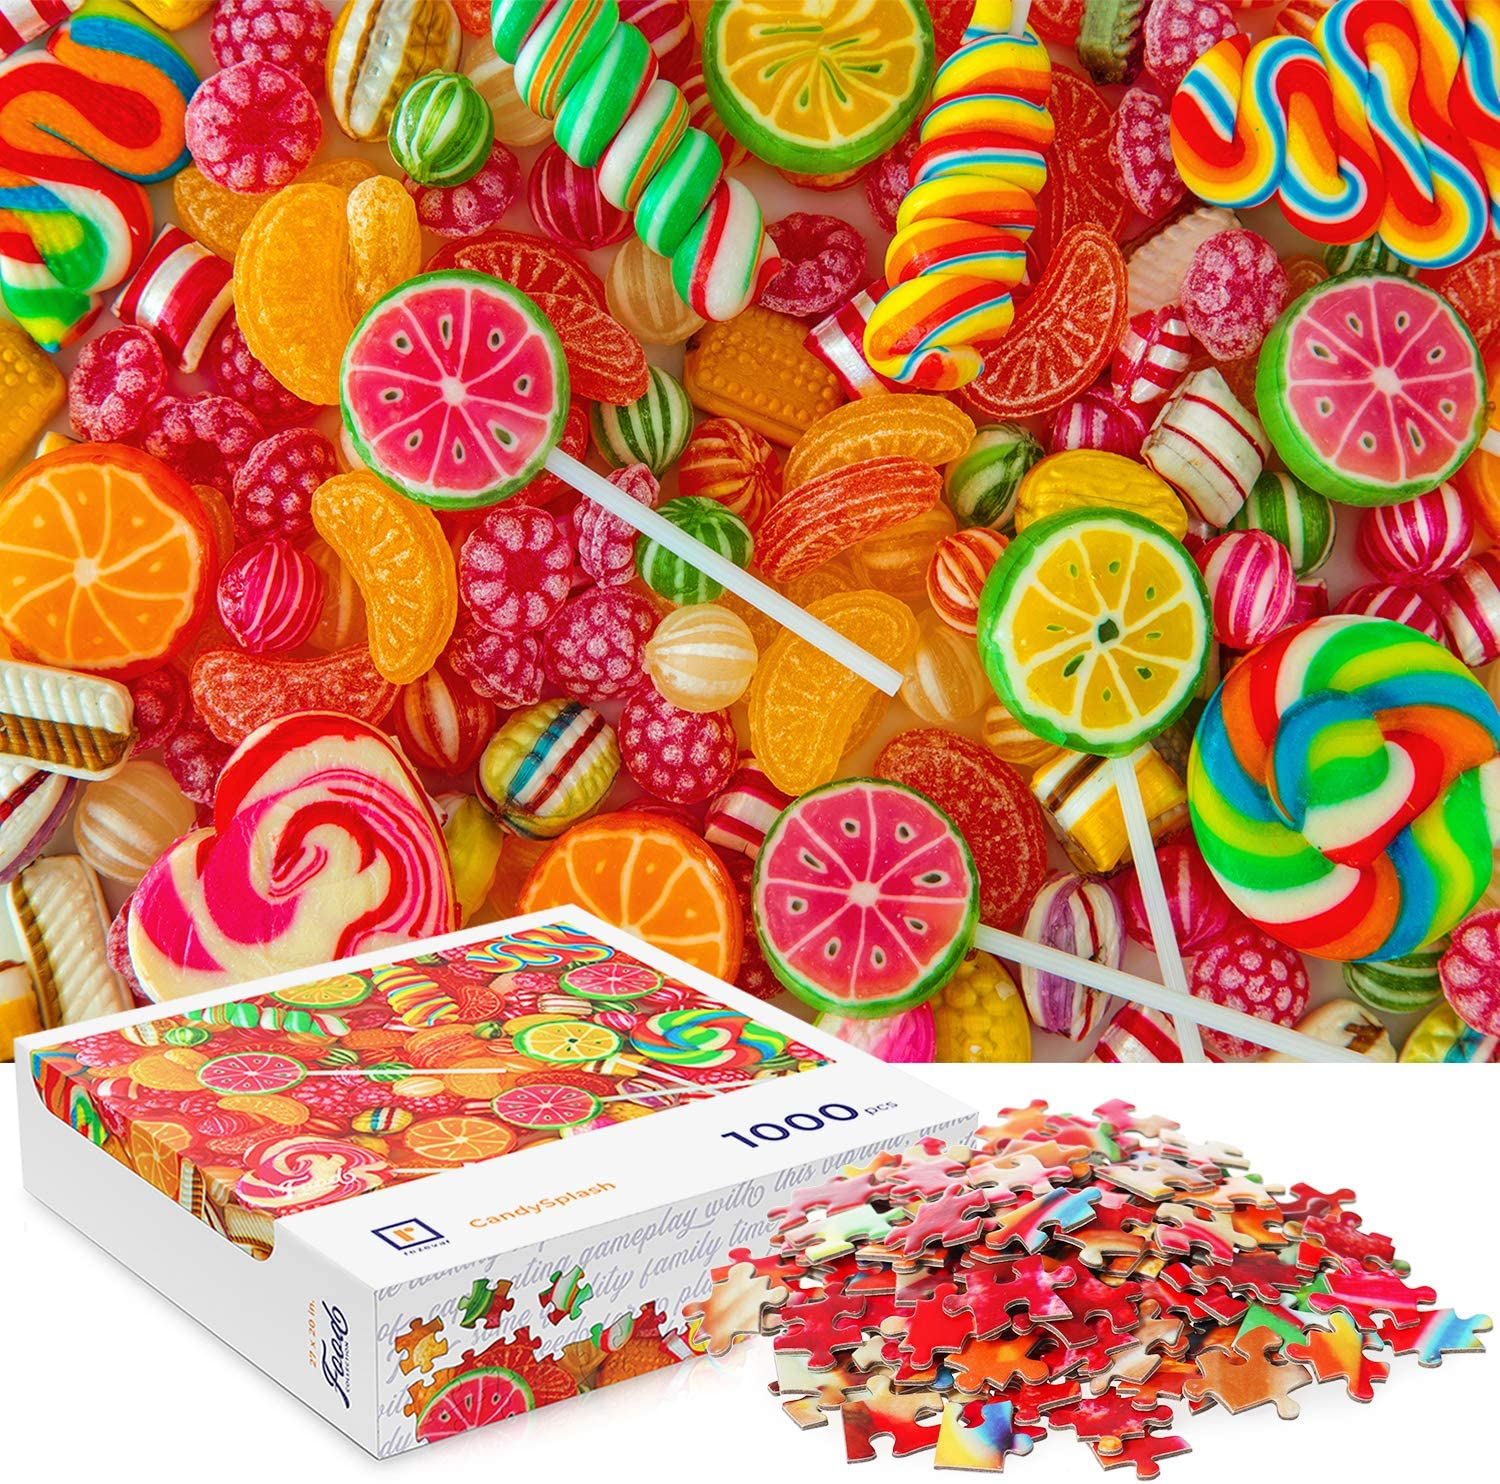 """Jigsaw Puzzles 1000 Pieces for Adults - 27"""" x 20"""" Candy Puzzle - Premium Quality Puzzle Pieces, Vivid Color & Large Reference Poster - Fun Family Game or Educational Toy Gift"""